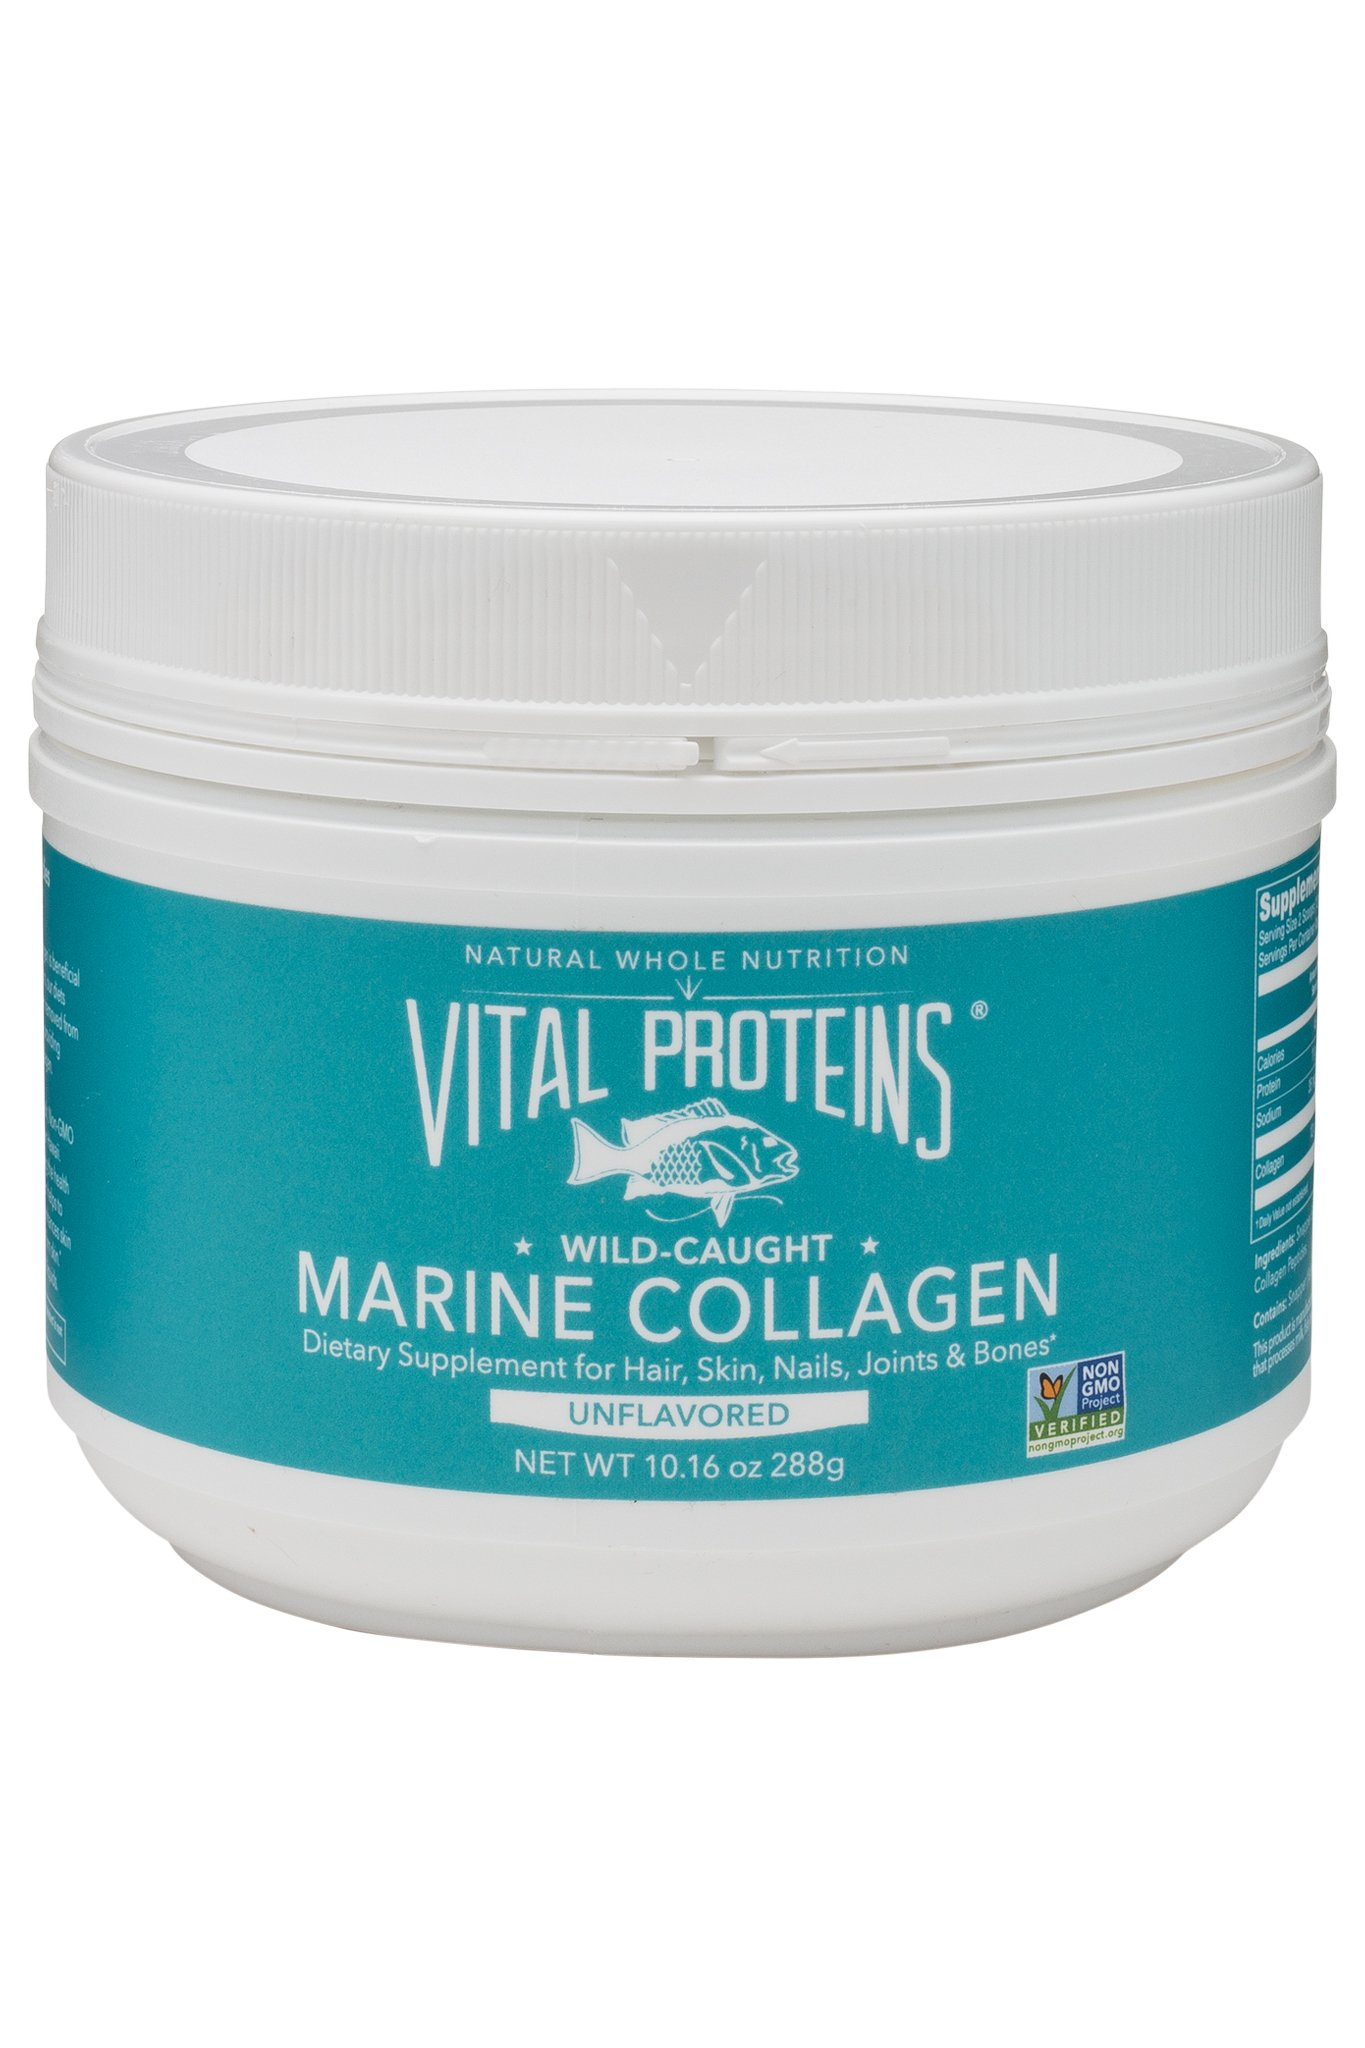 Vital Proteins Marine Collagen, Wild-Caught, Non-GMO Project Verified, 10 Ounces